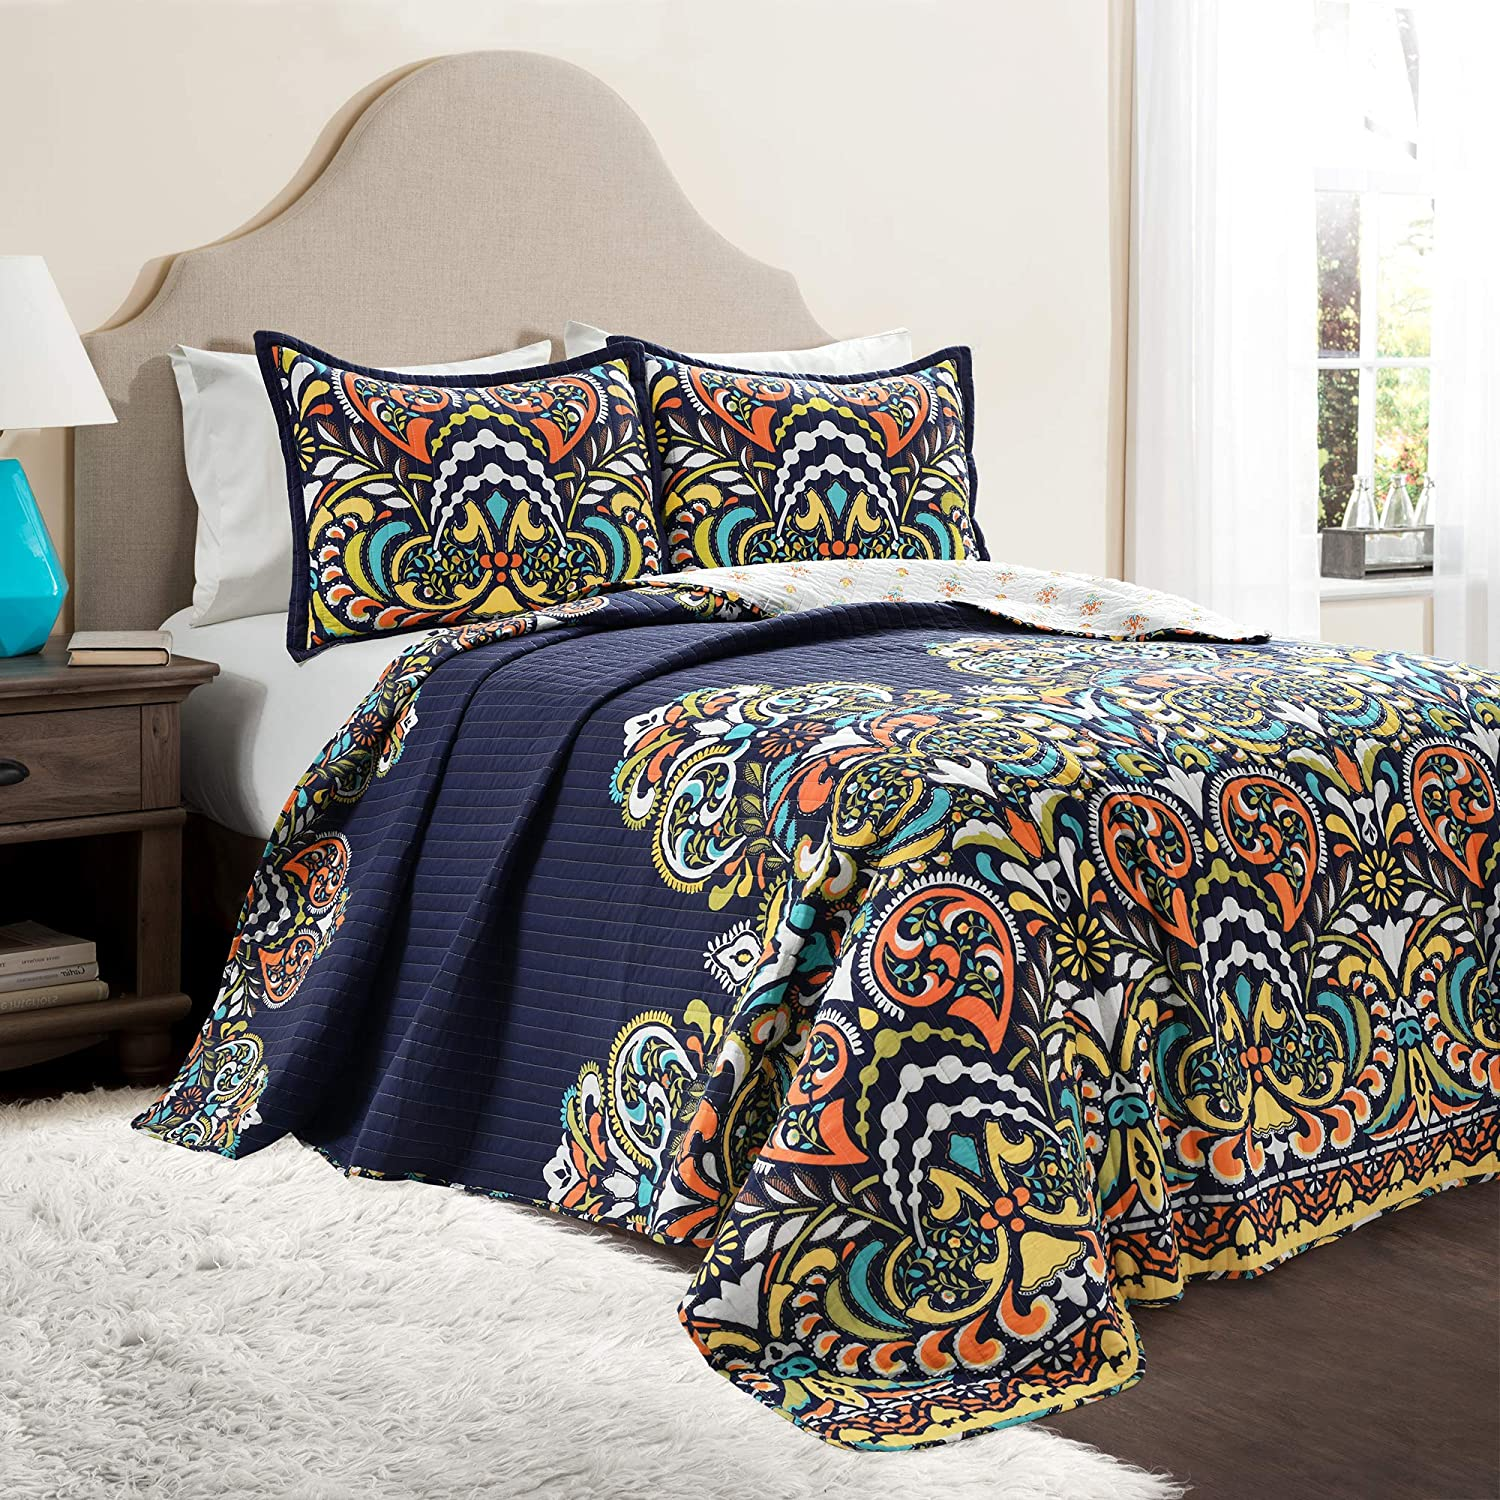 Lush Decor Clara Quilt 3 Piece Reversible Bedding Set, King, Navy